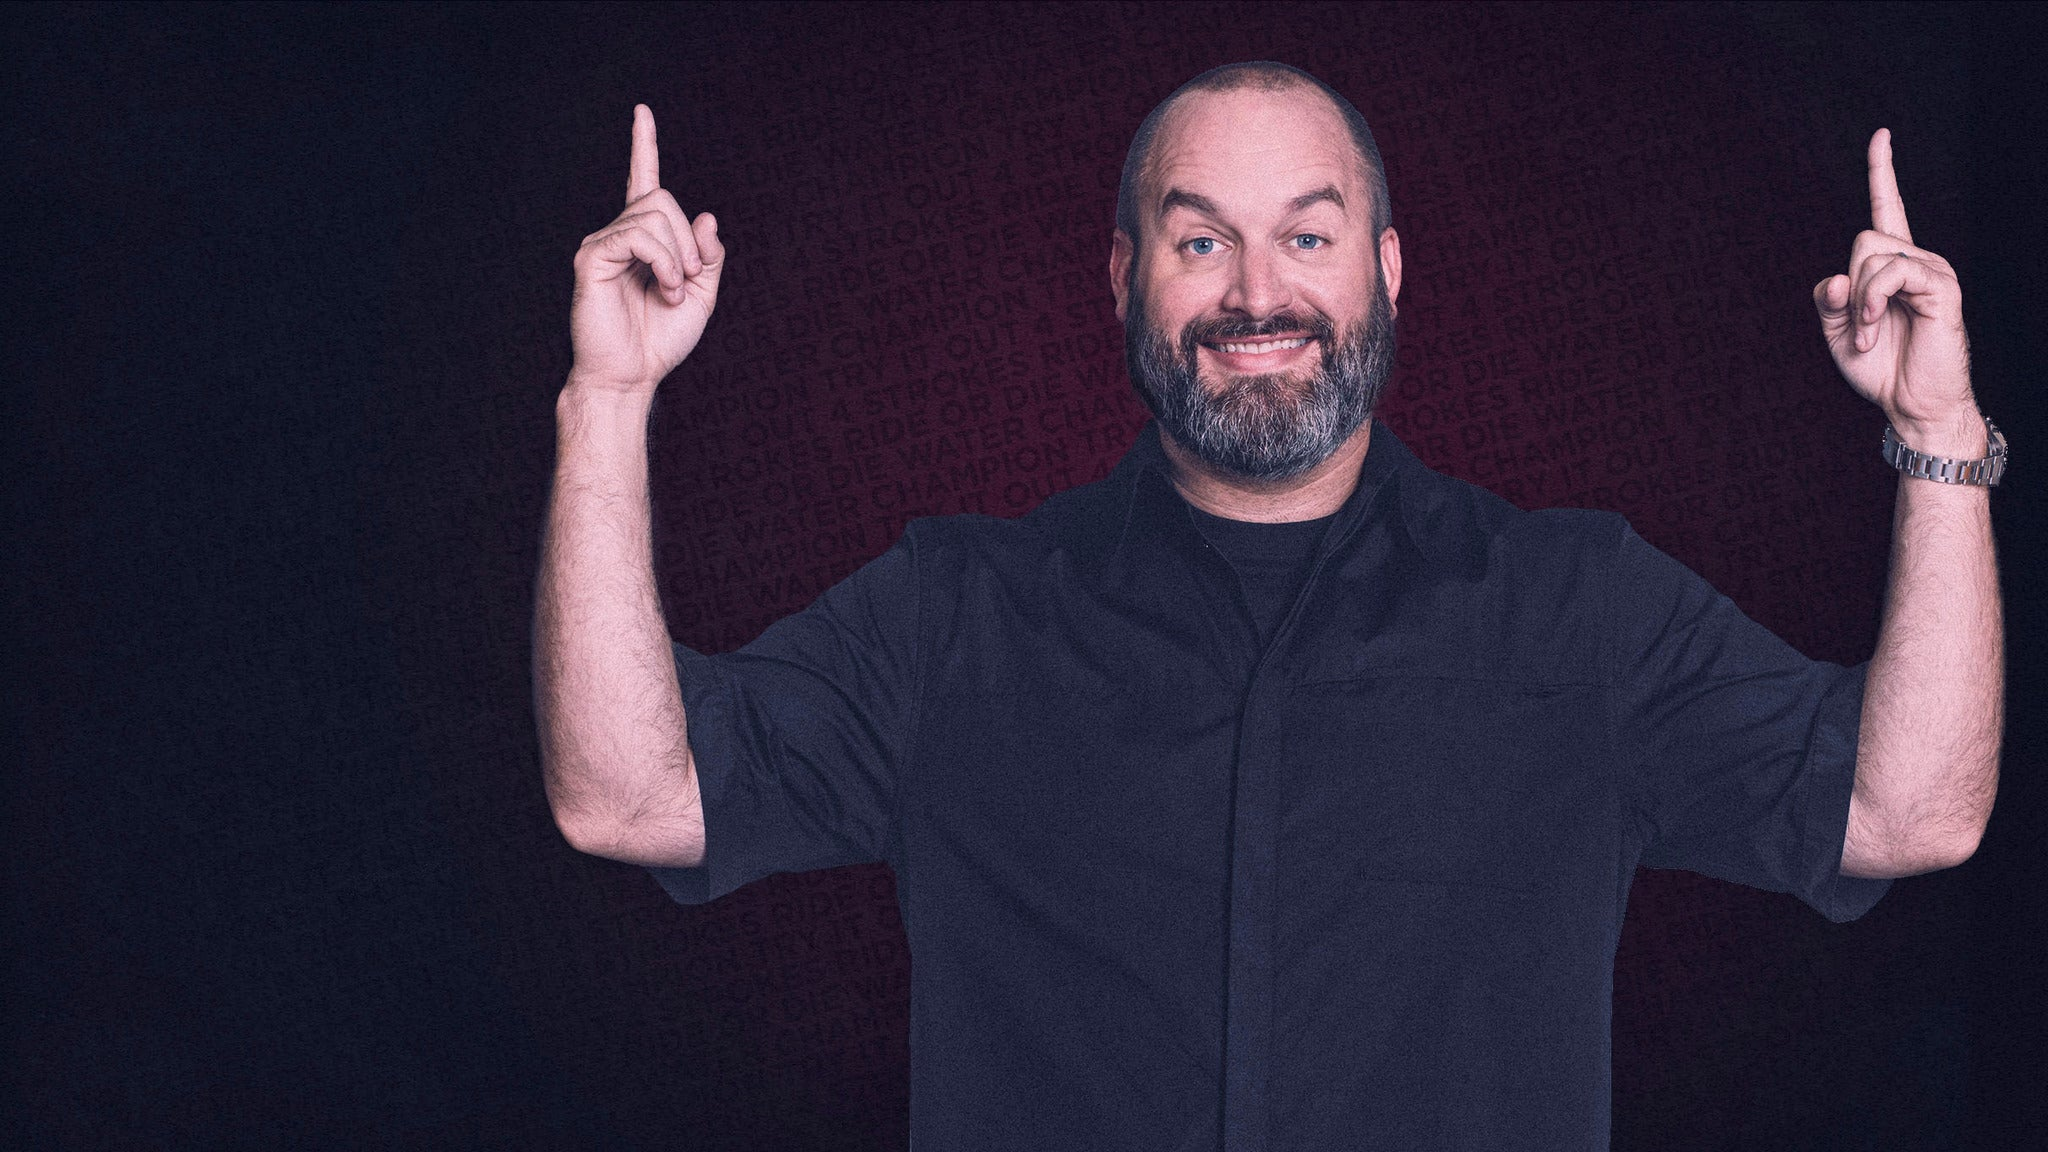 Tom Segura at Pechanga Resort and Casino